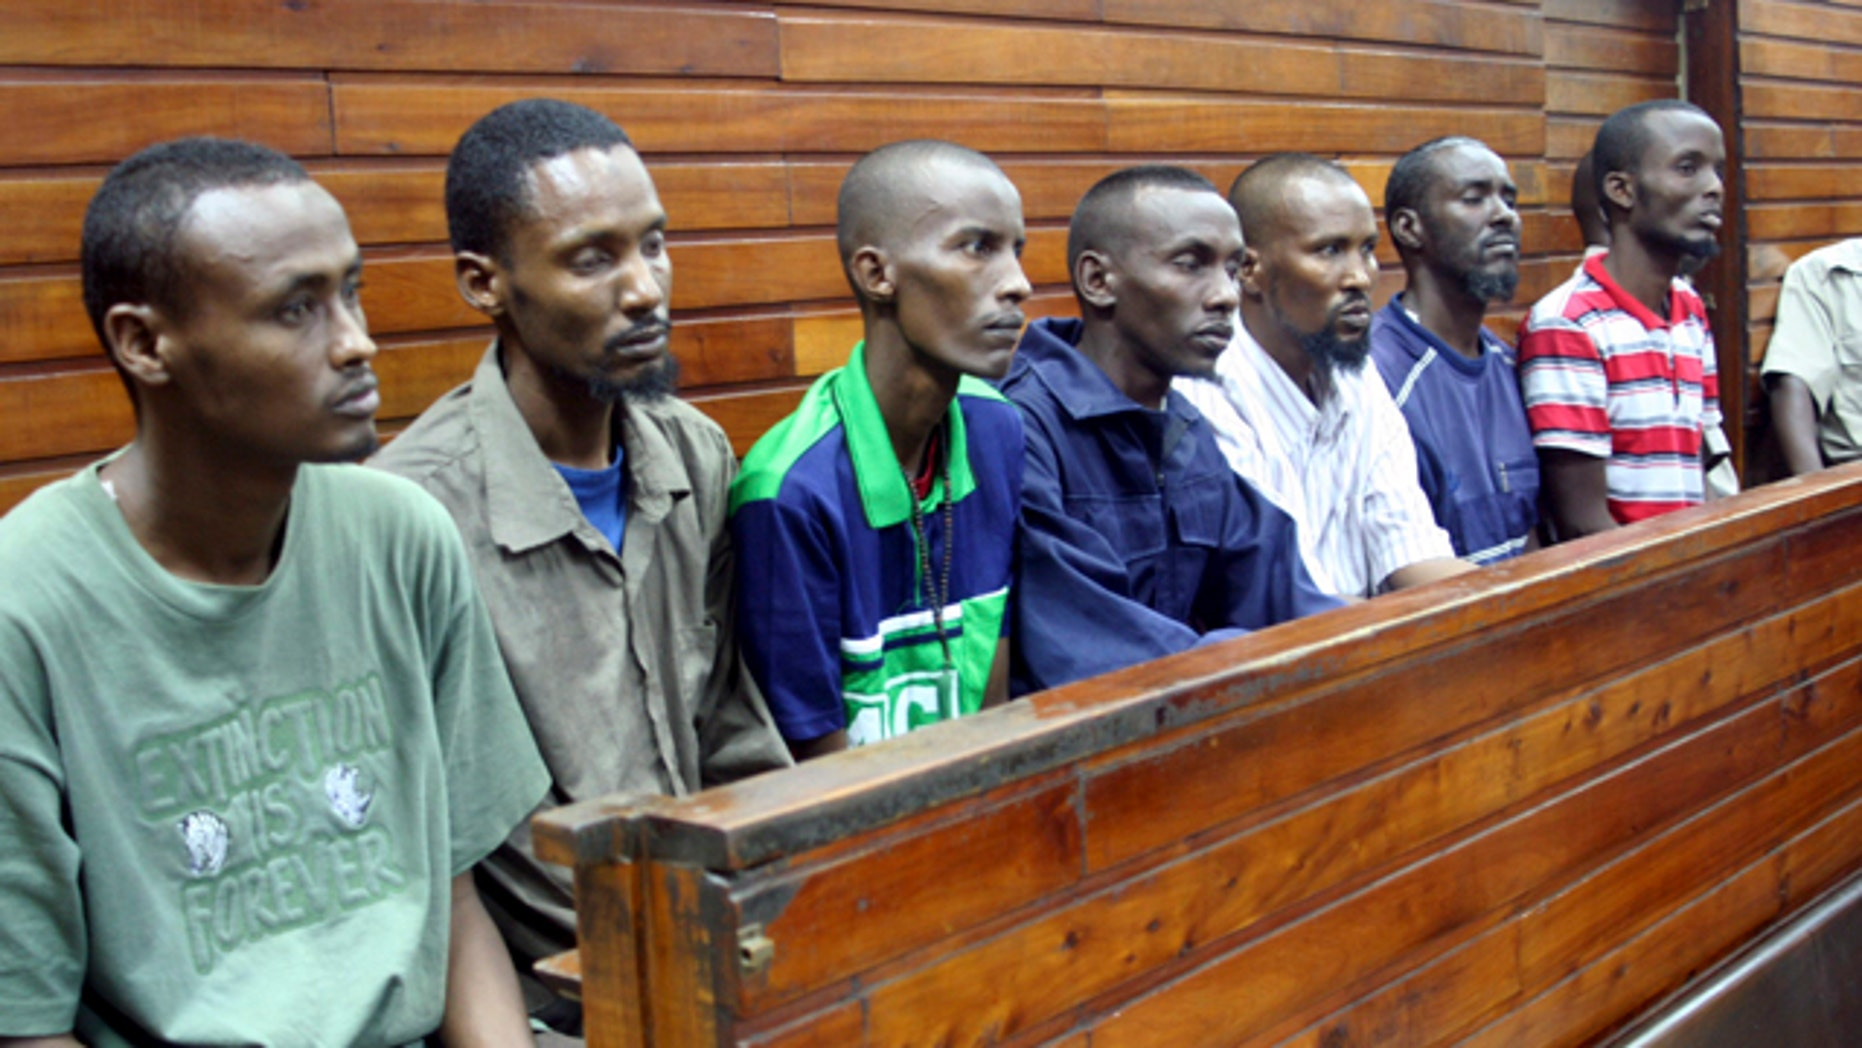 September 6: The seven suspected Somali pirates sit in the dock at the Mombasa Law courts in Kenya, as the Mombasa Chief Magistrate Rosemelle Motoka read her judgement. (AP)